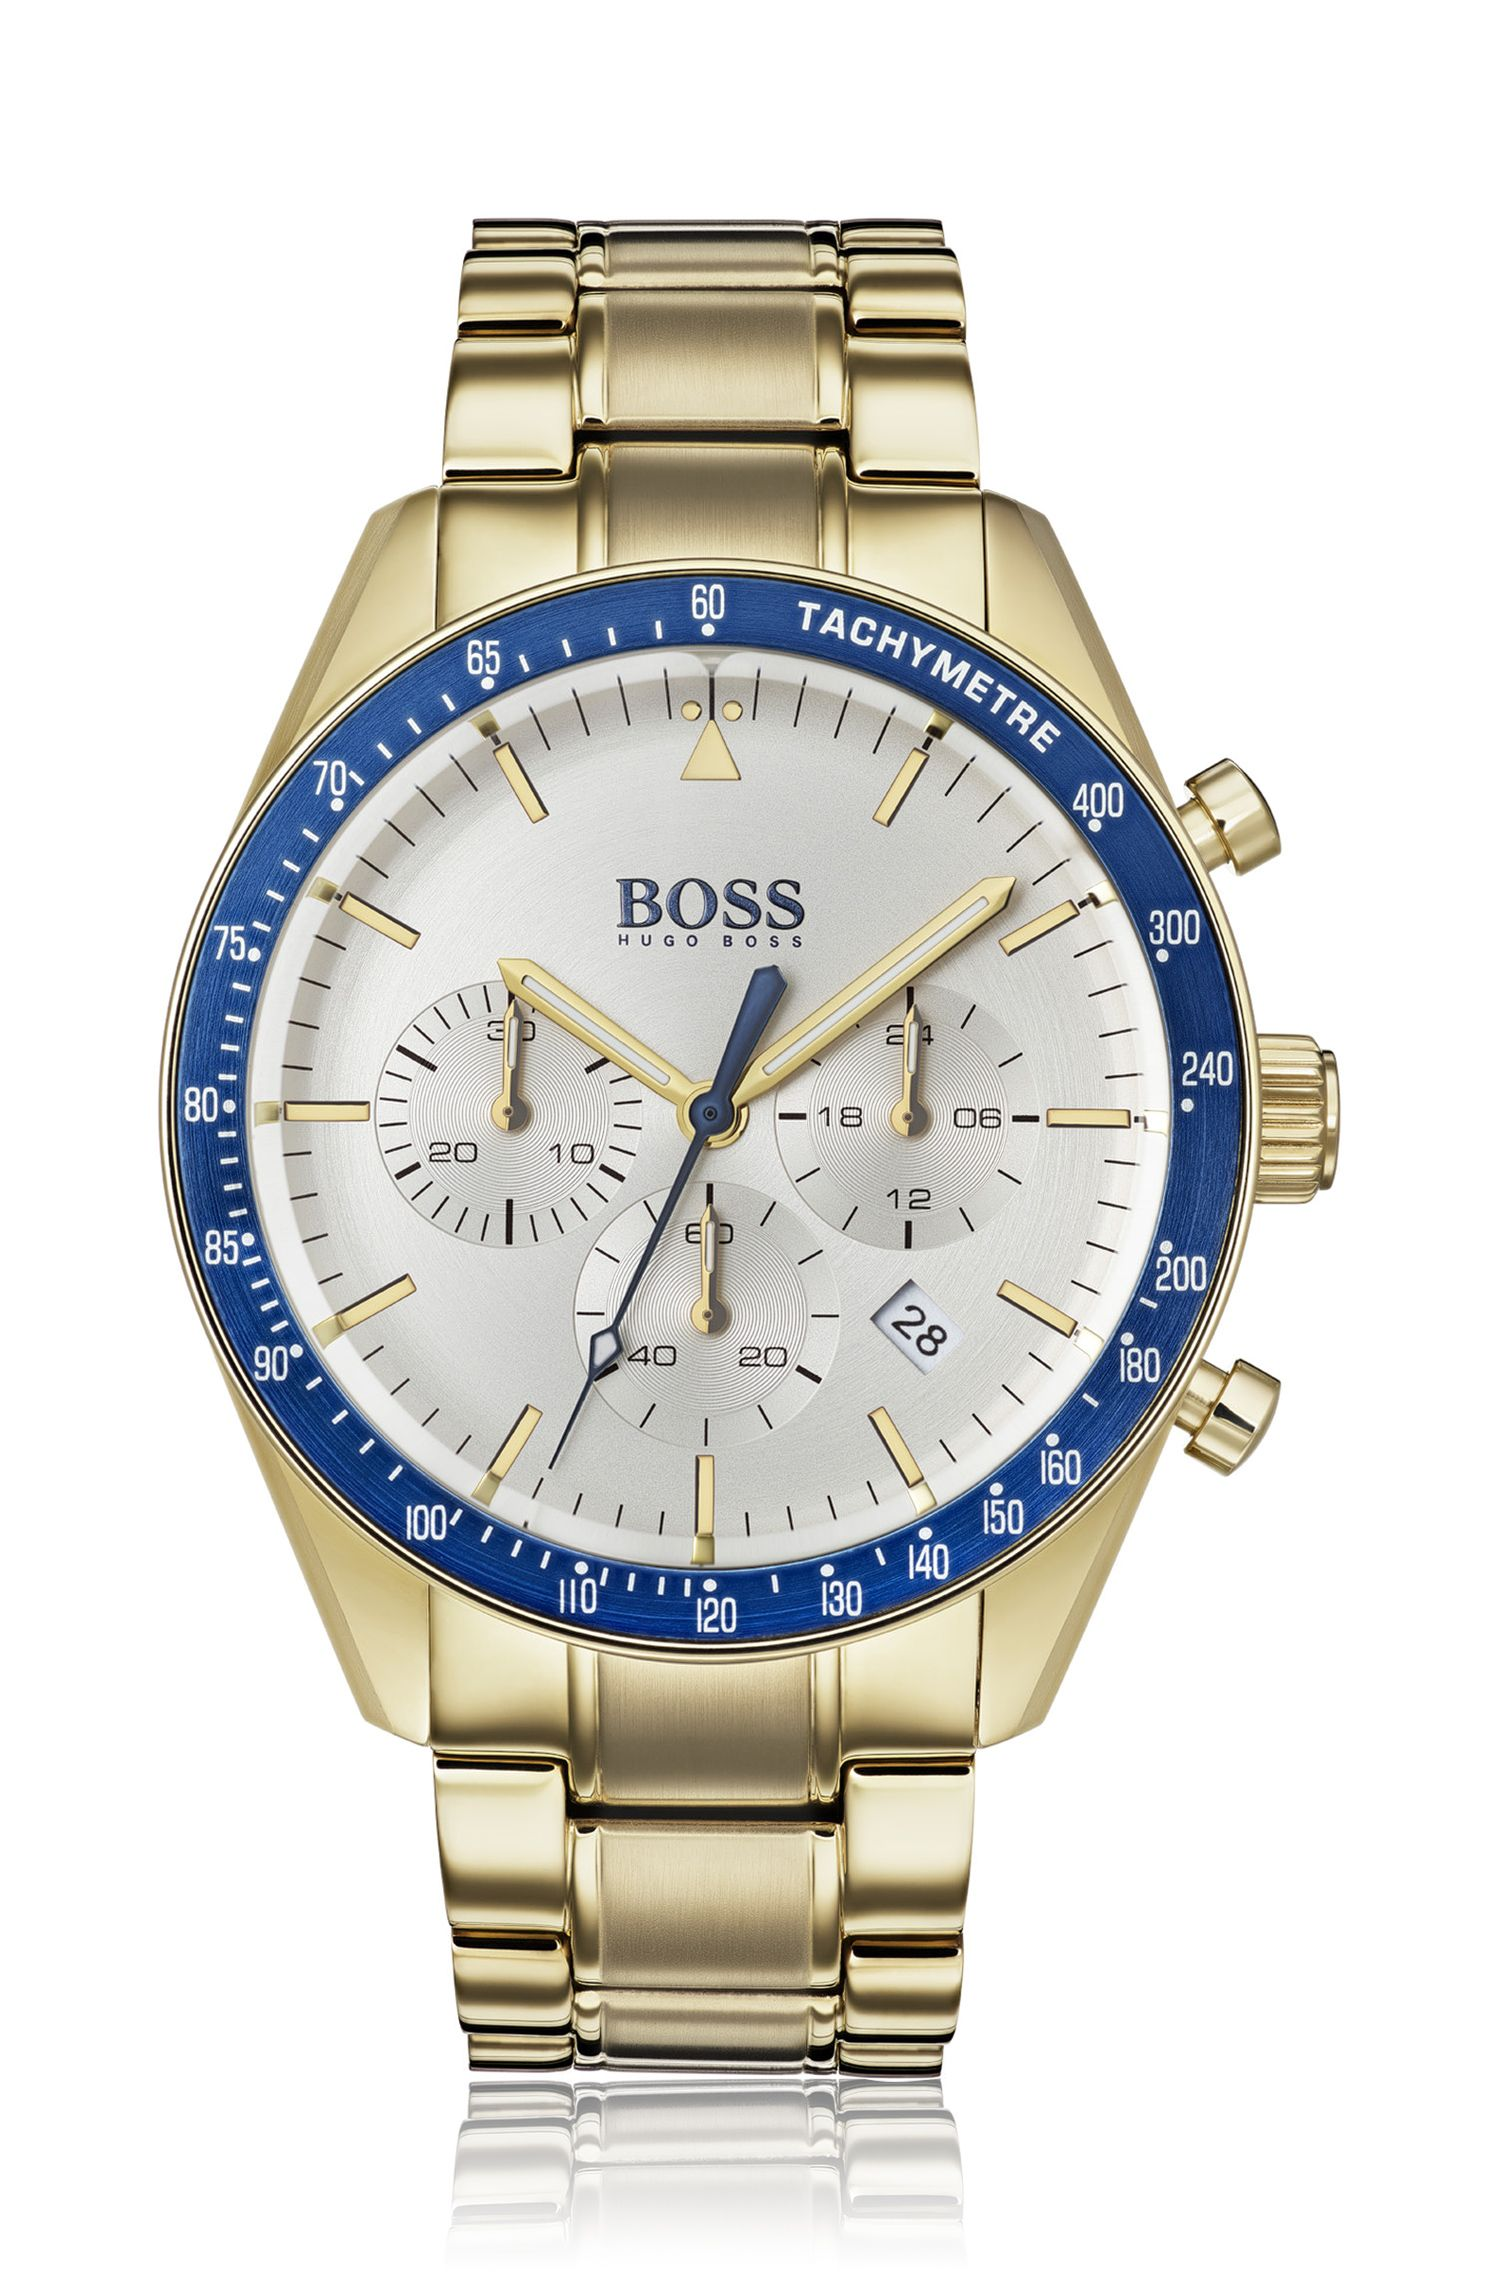 Yellow-gold-plated chronograph watch with blue bezel, Gold